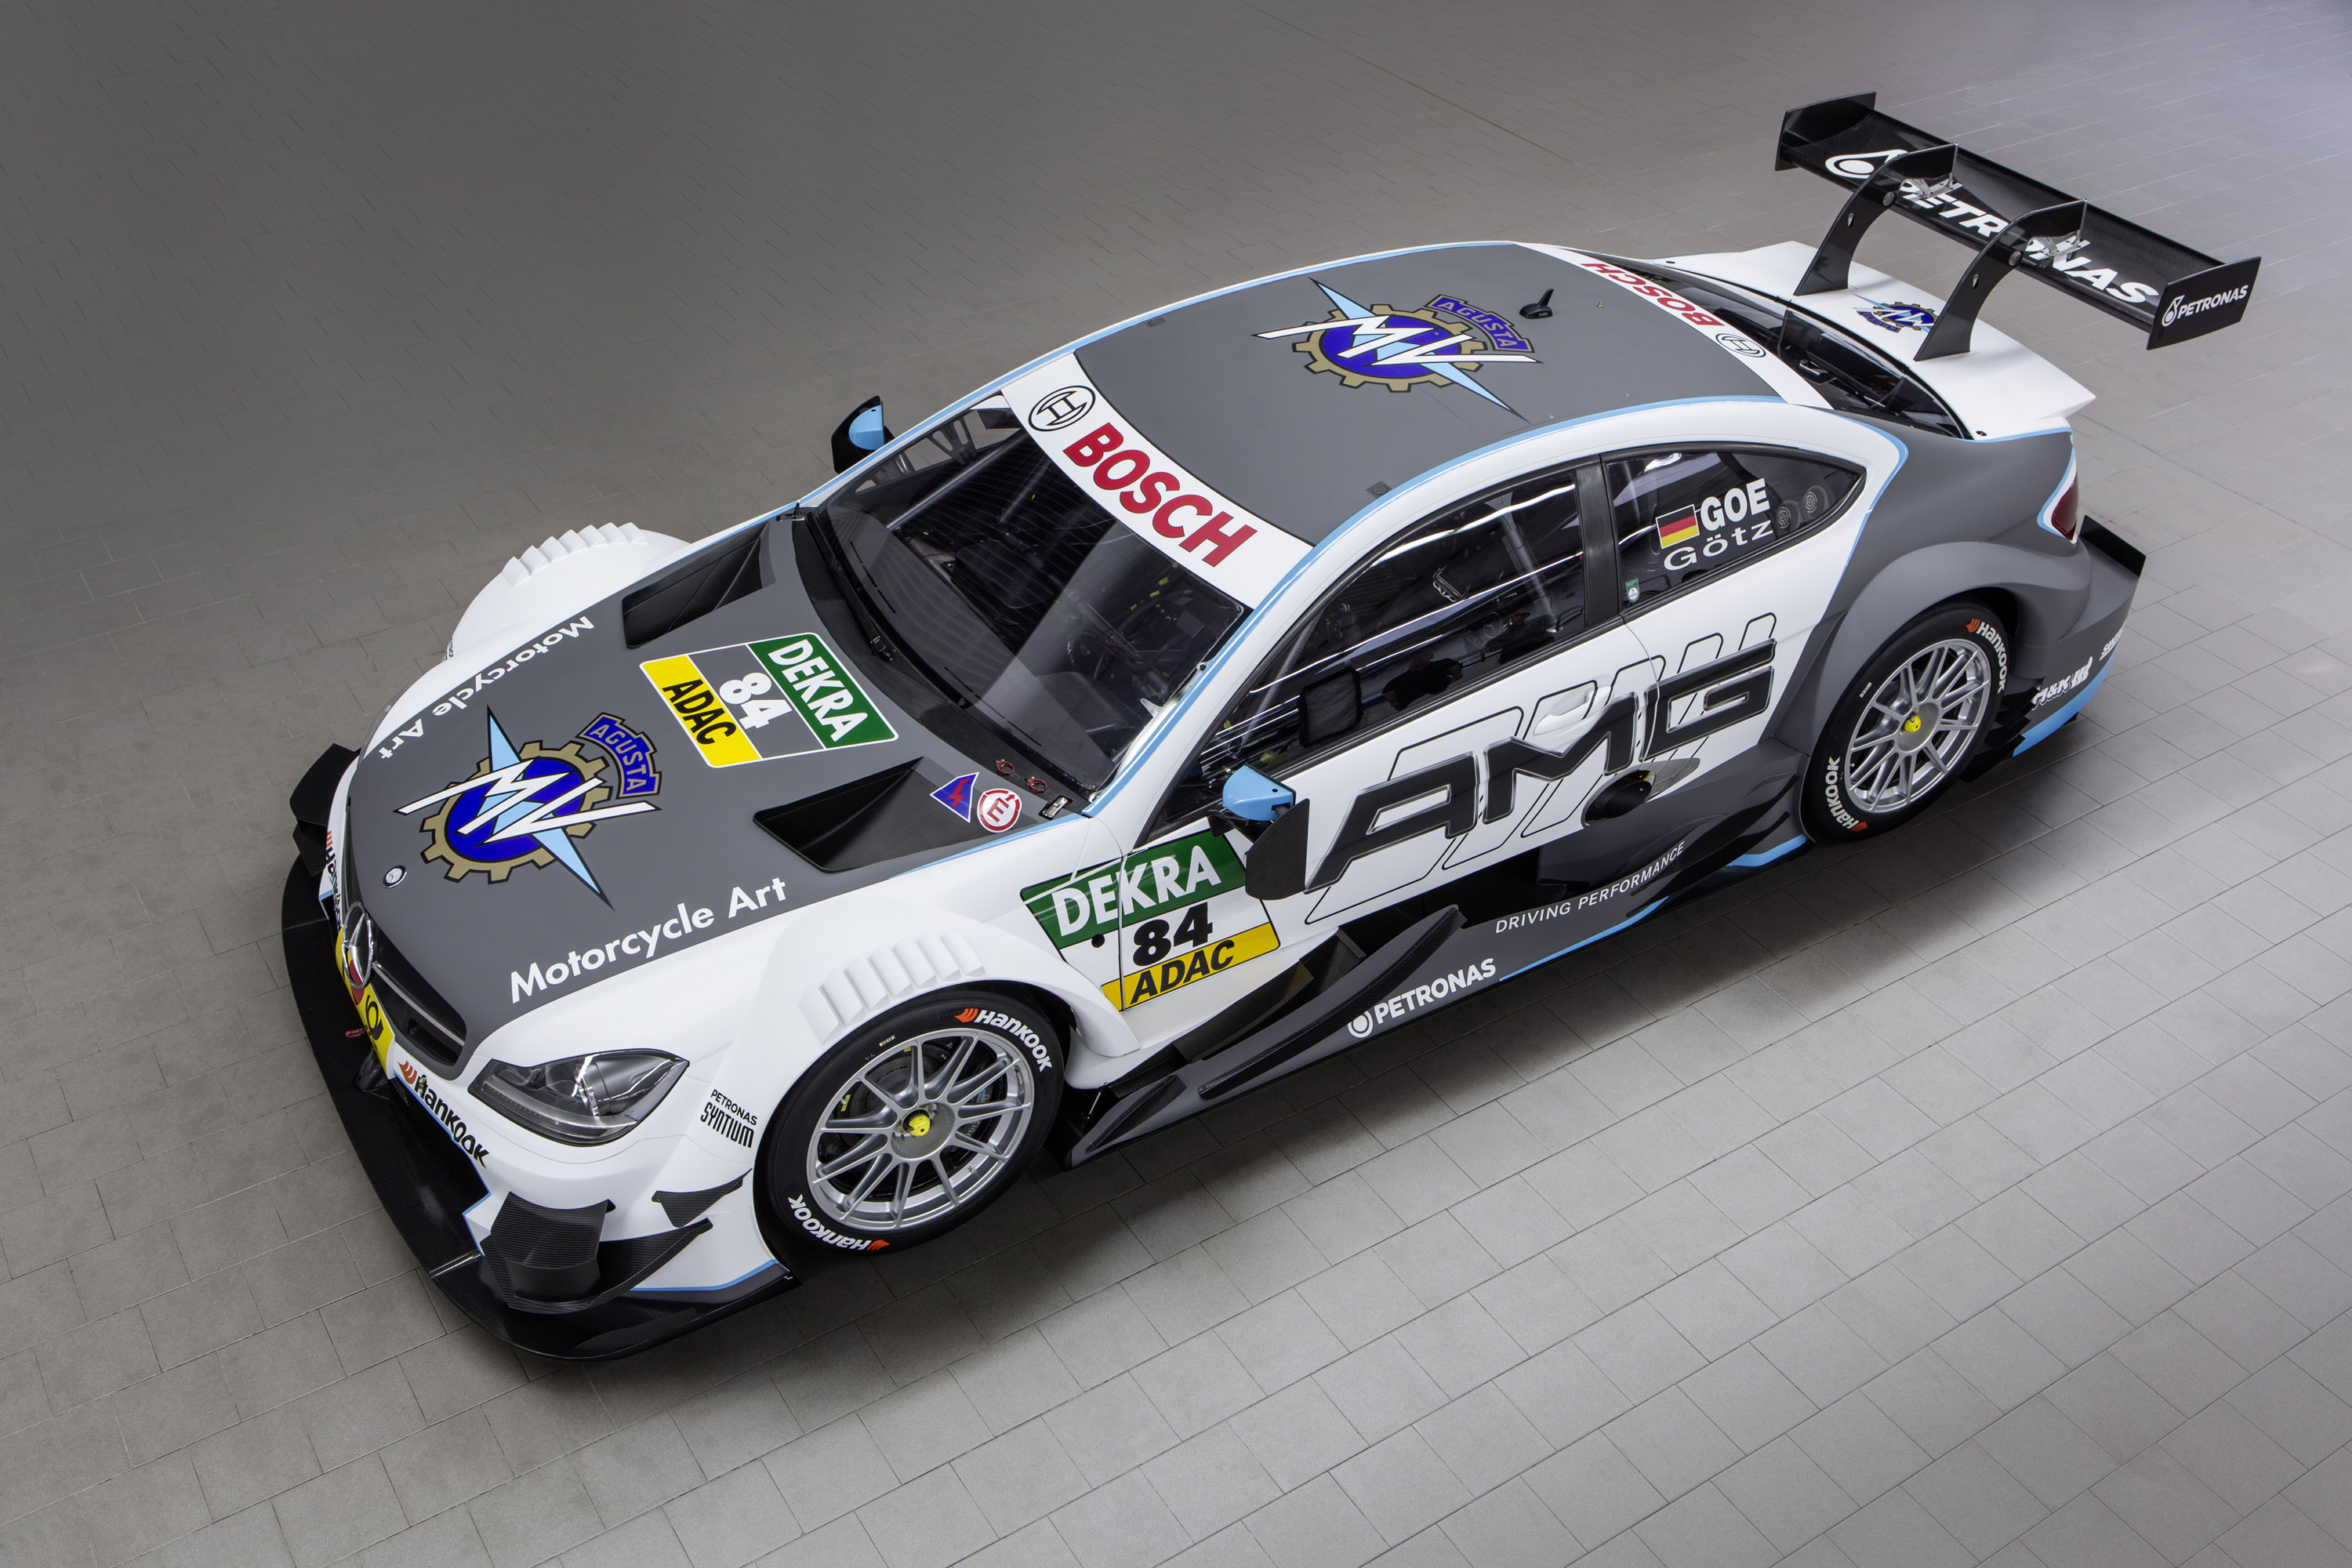 Mercedes amg c63 dtm coupe with mv agusta livery for Mercedes benz race car